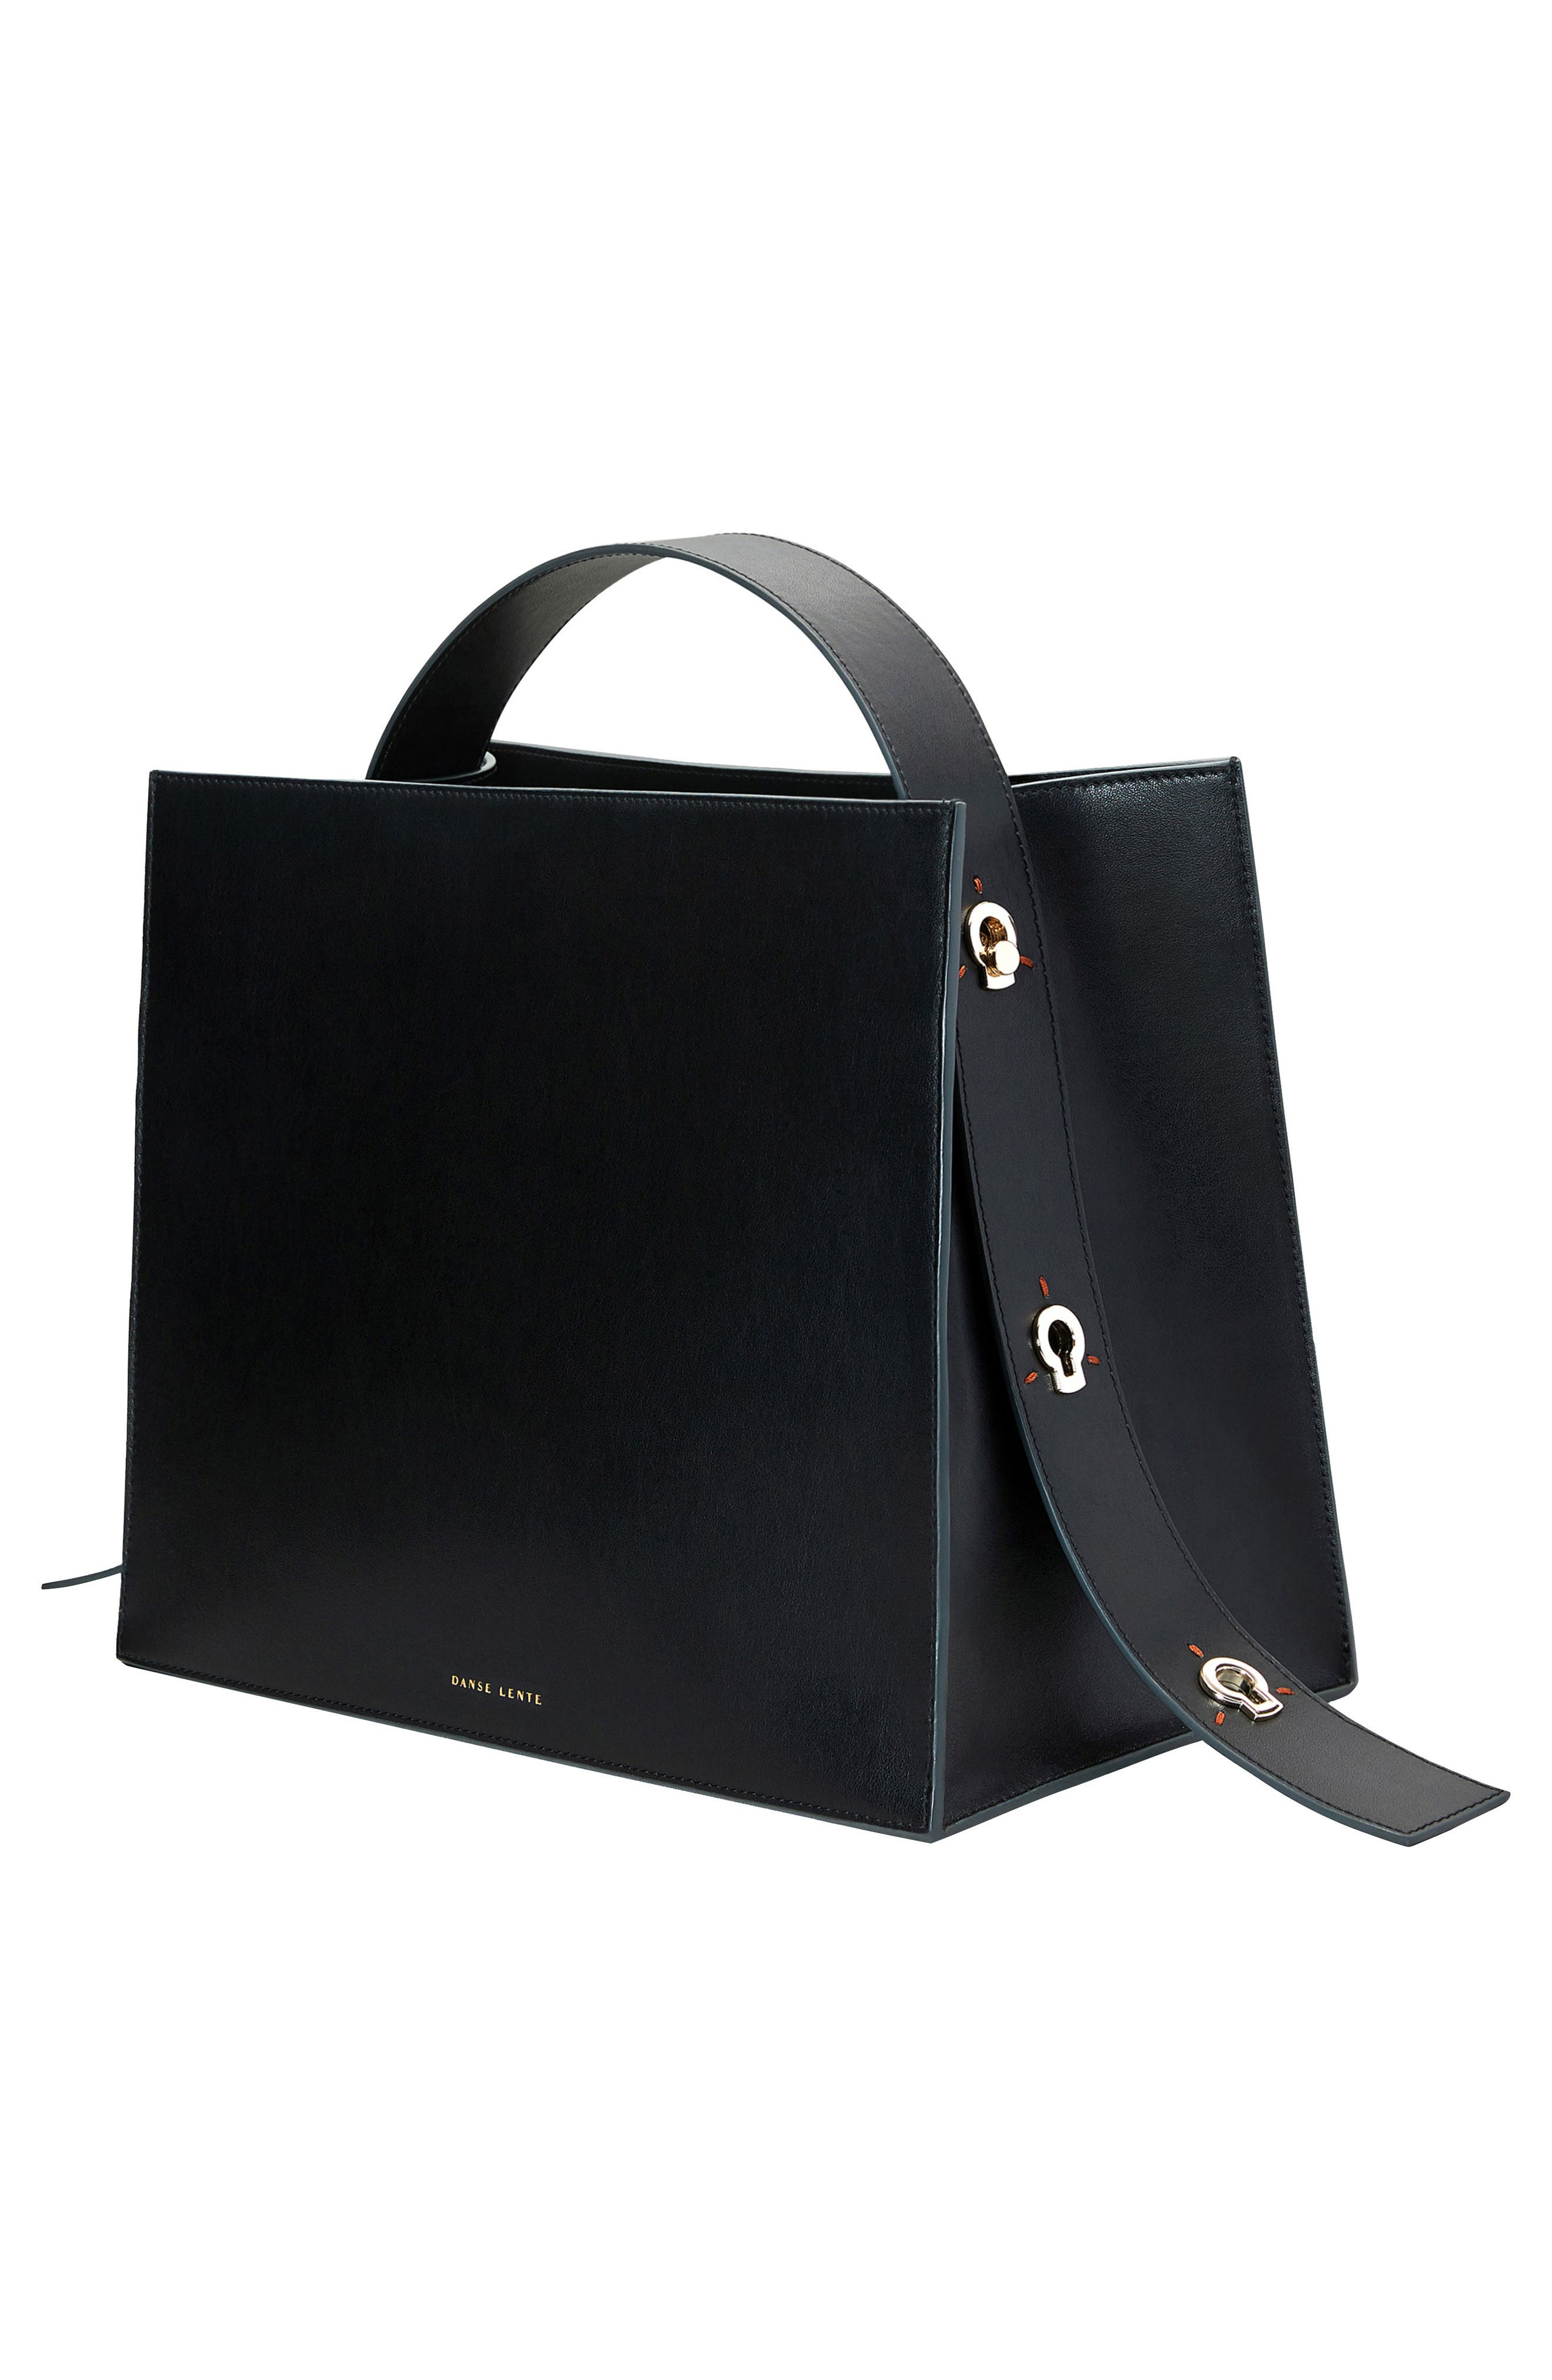 Young Leather Tote Bag,                             Alternate thumbnail 6, color,                             Black